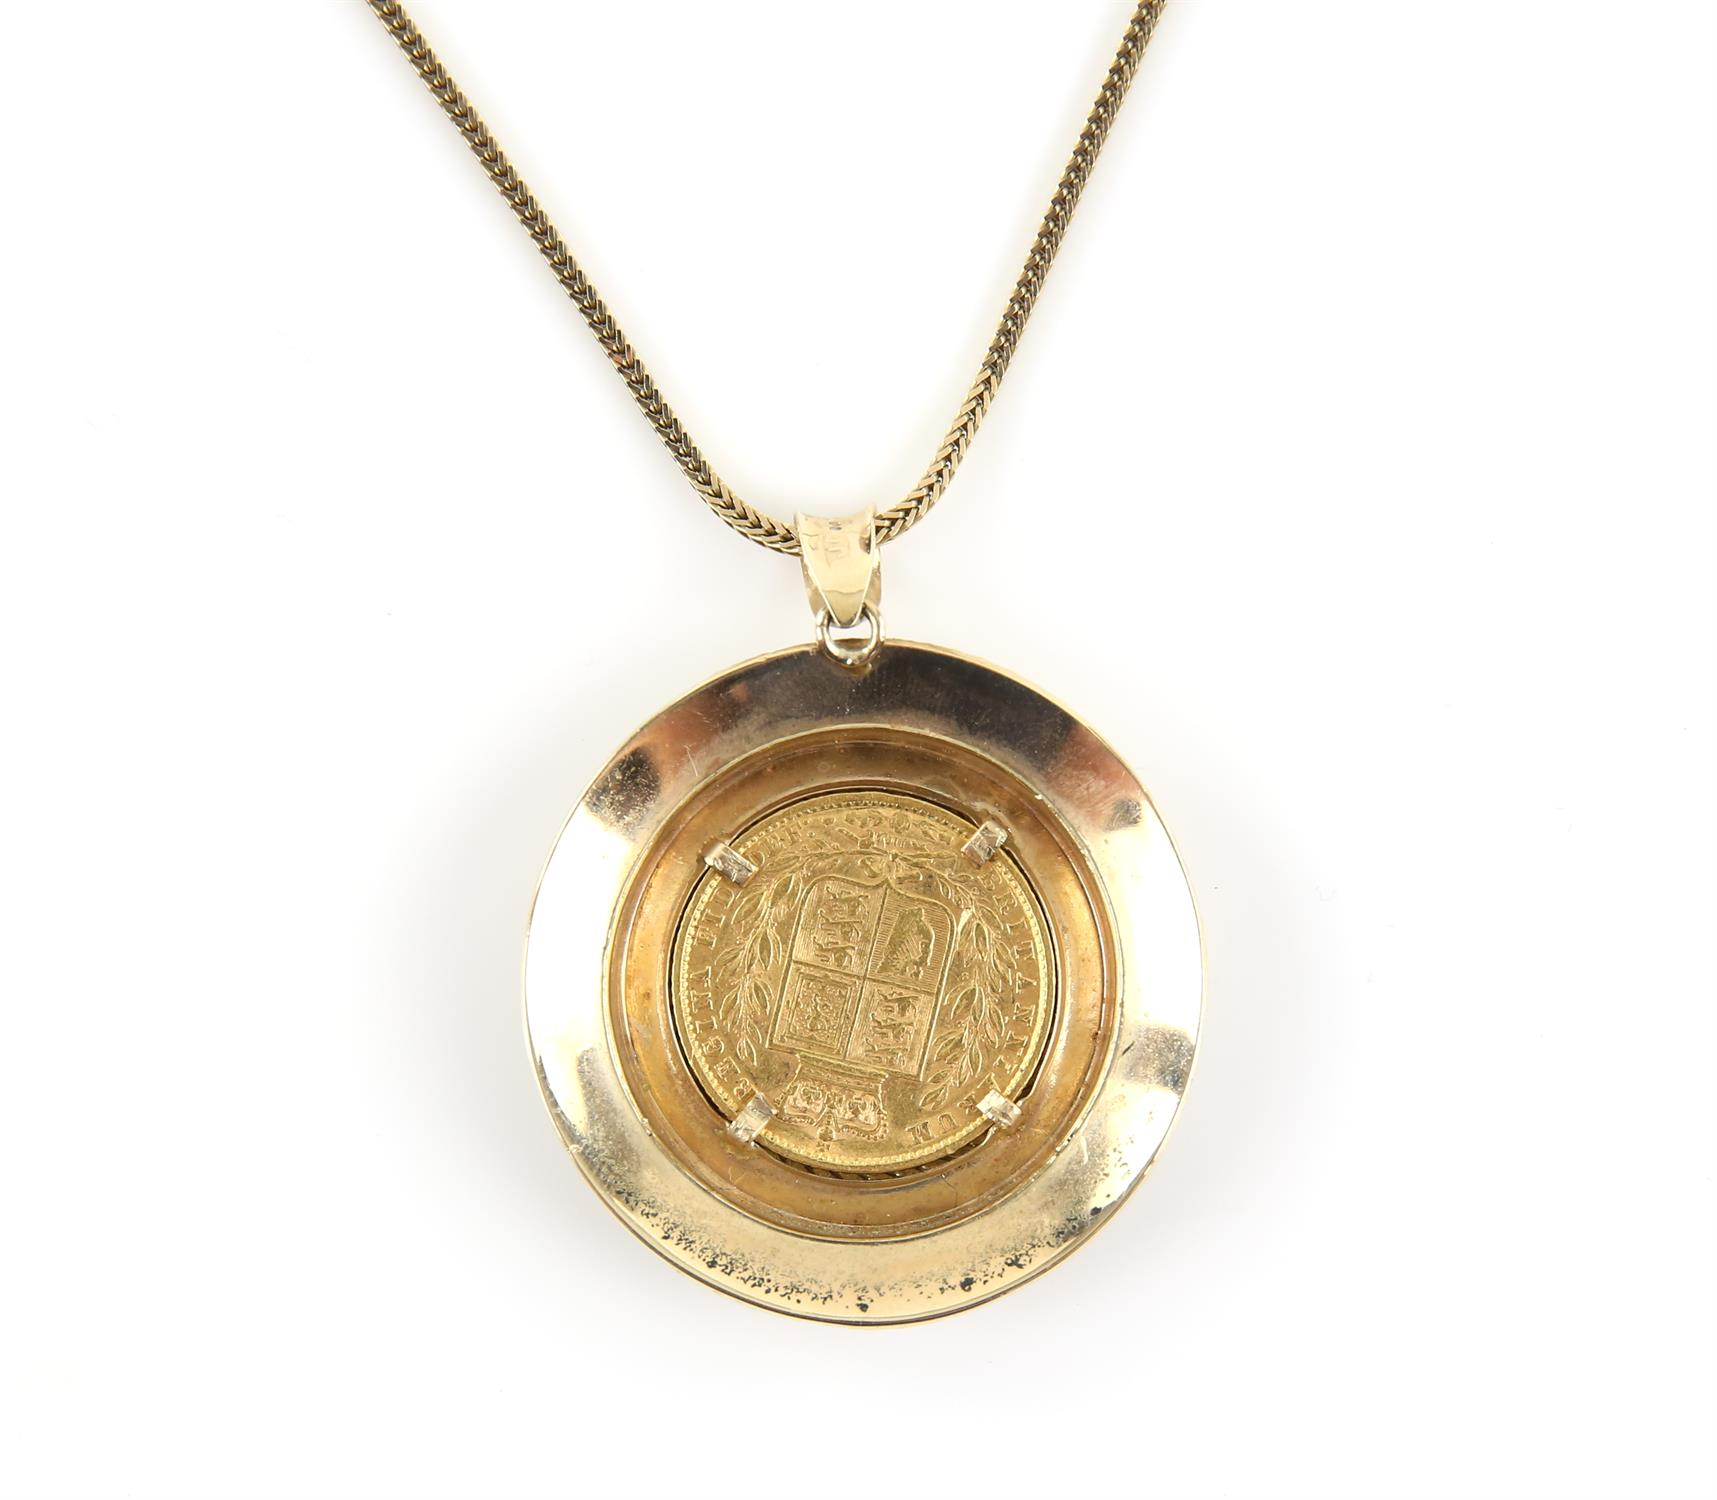 Pendant coin mount, in 9 ct set with a Victorian 1871 shield back sovereign, on a fancy link chain, - Image 2 of 3